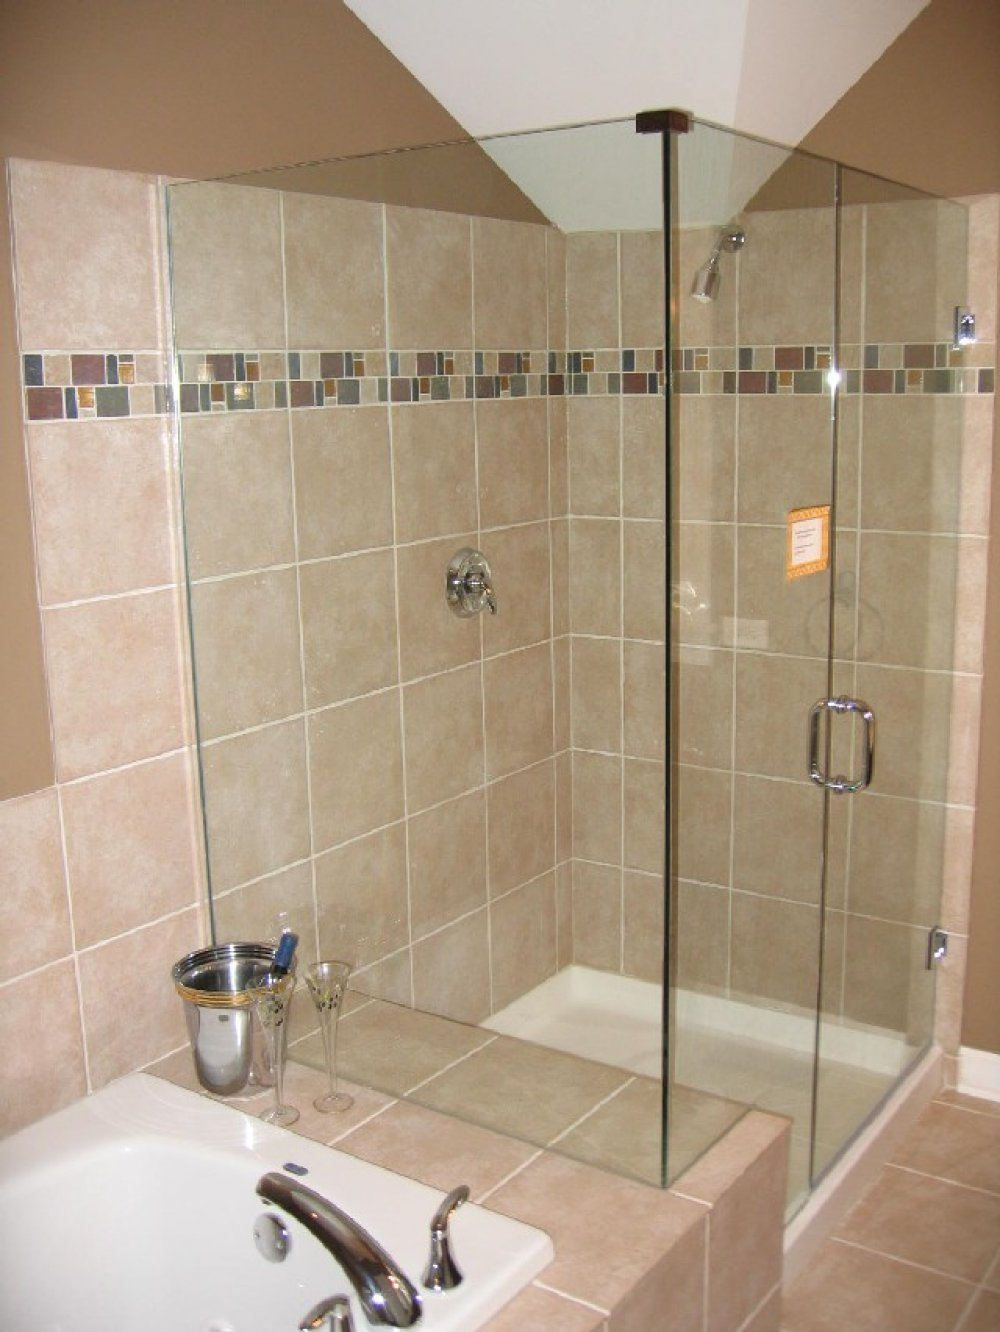 Bathroom Tile Ideas For Amusing Shower Wall Tile Designs